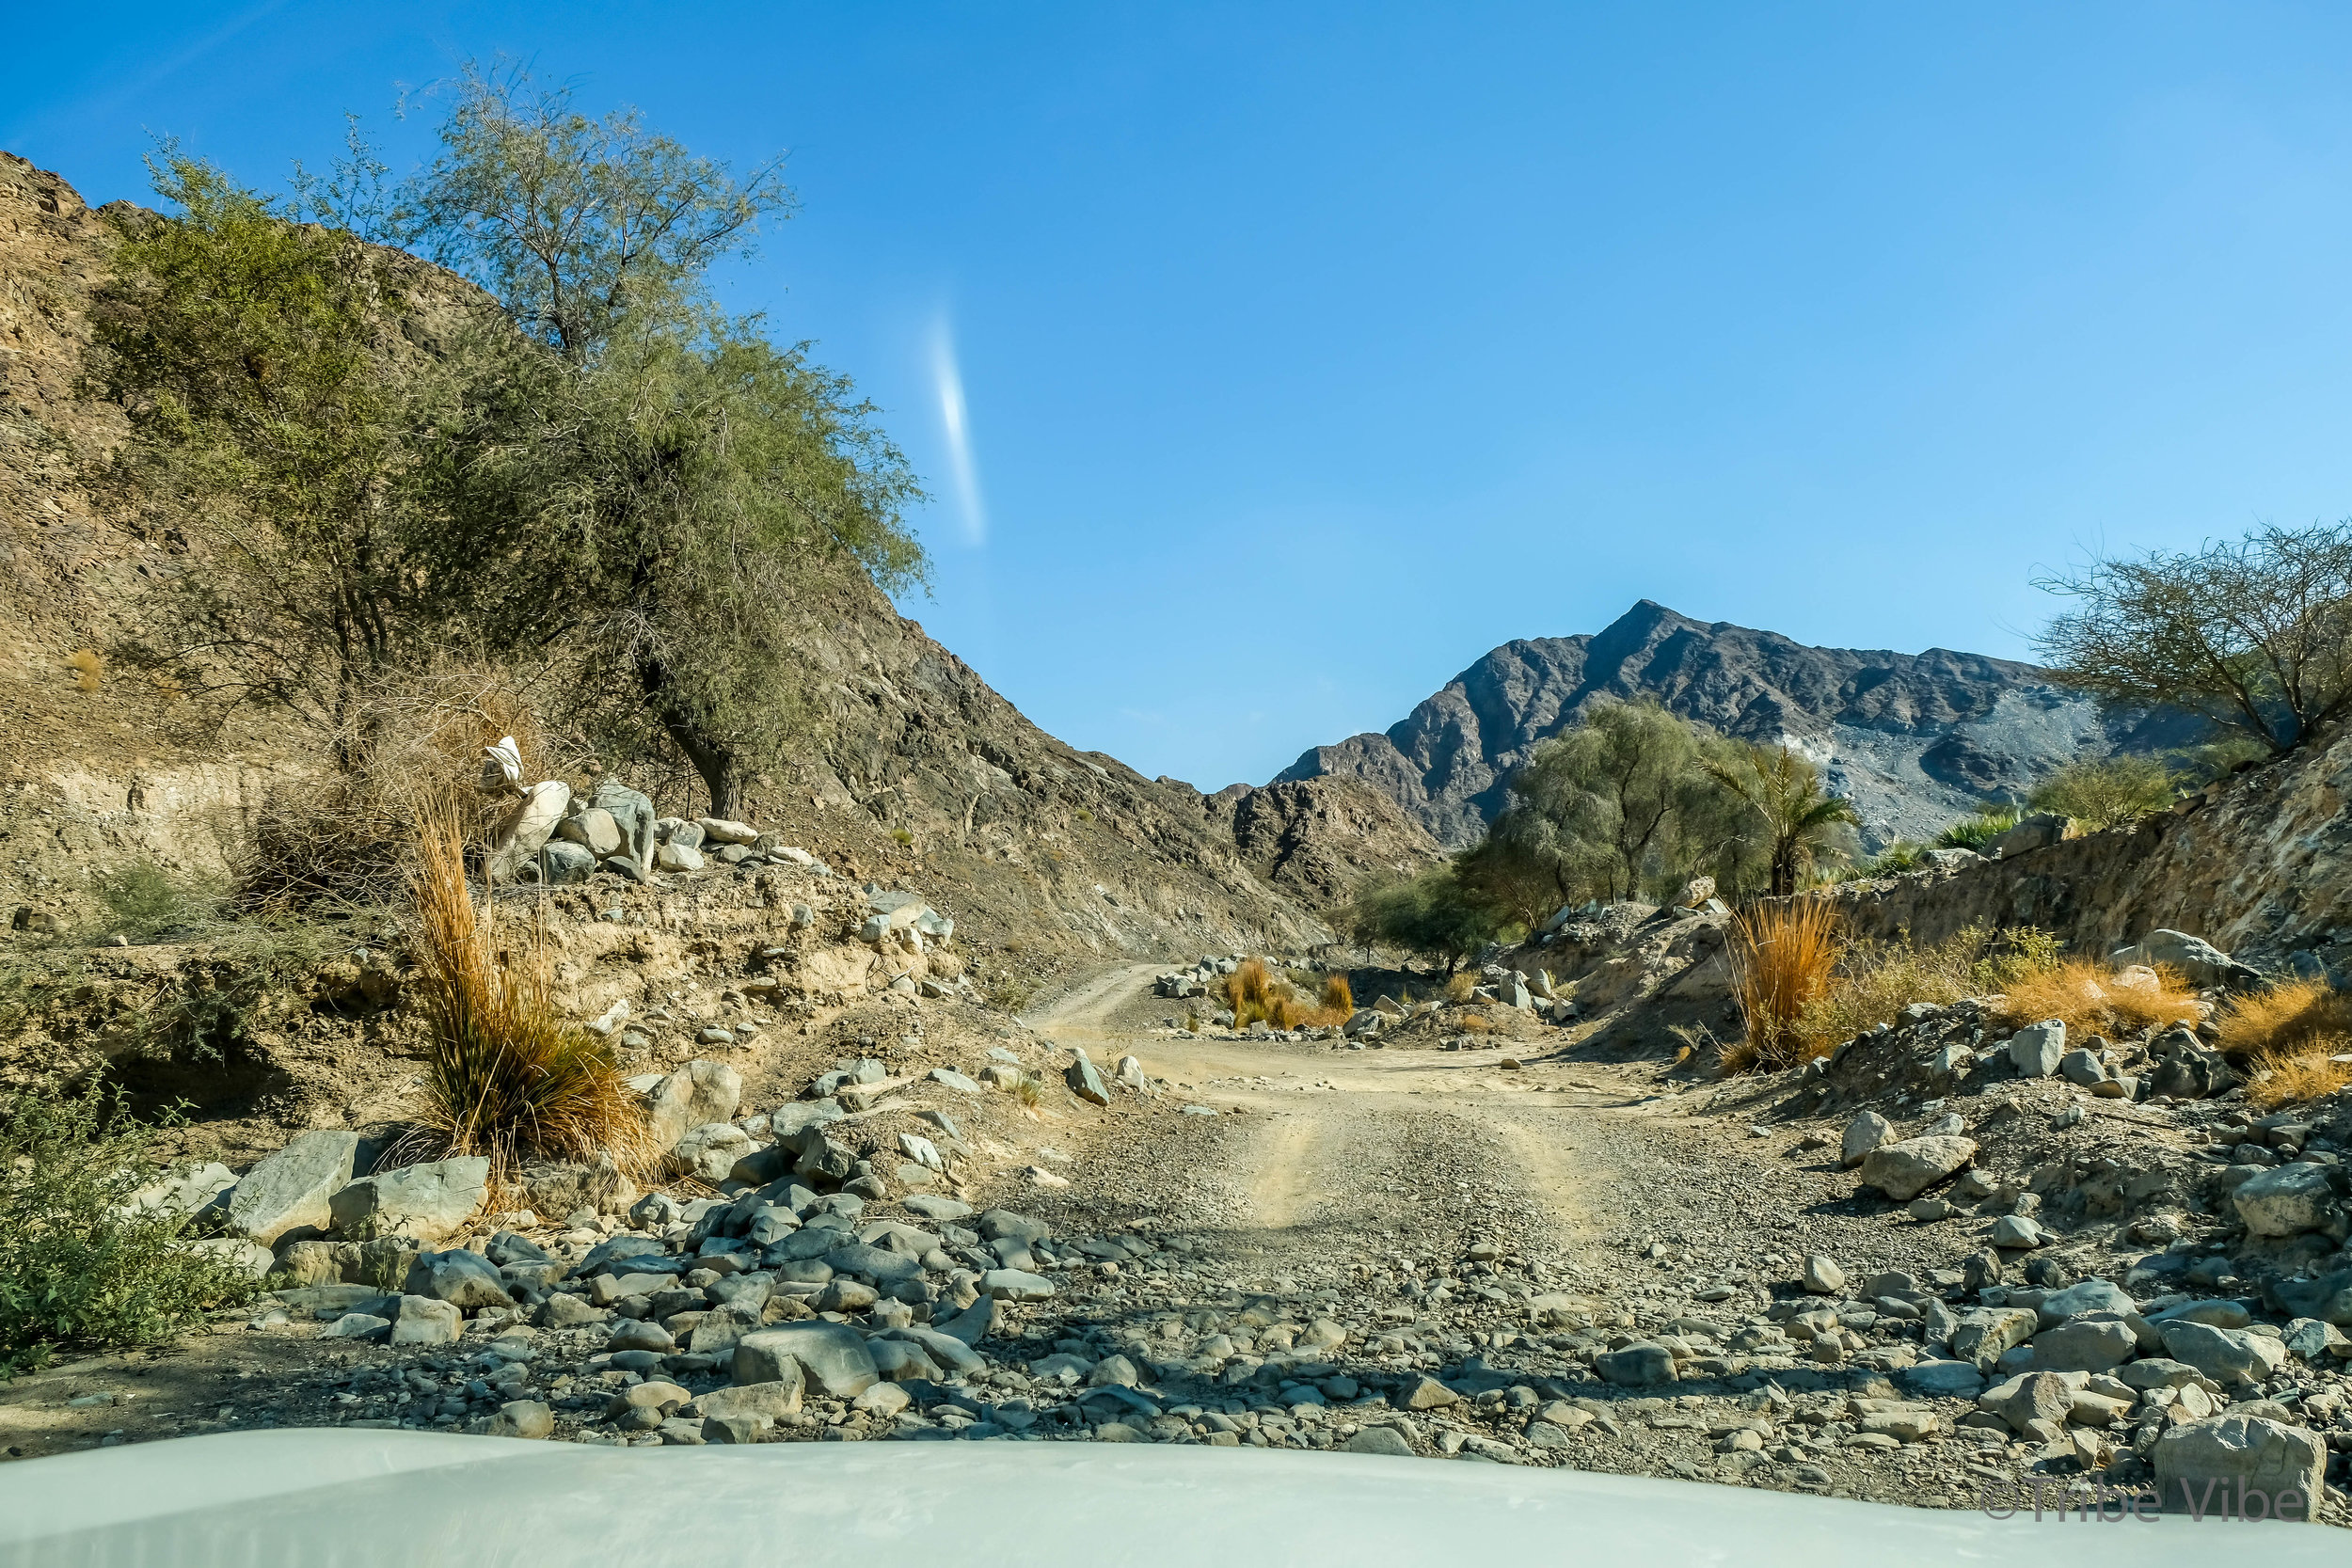 The wadi driving only lasted a few kilometres before we decided to get out and start our hike